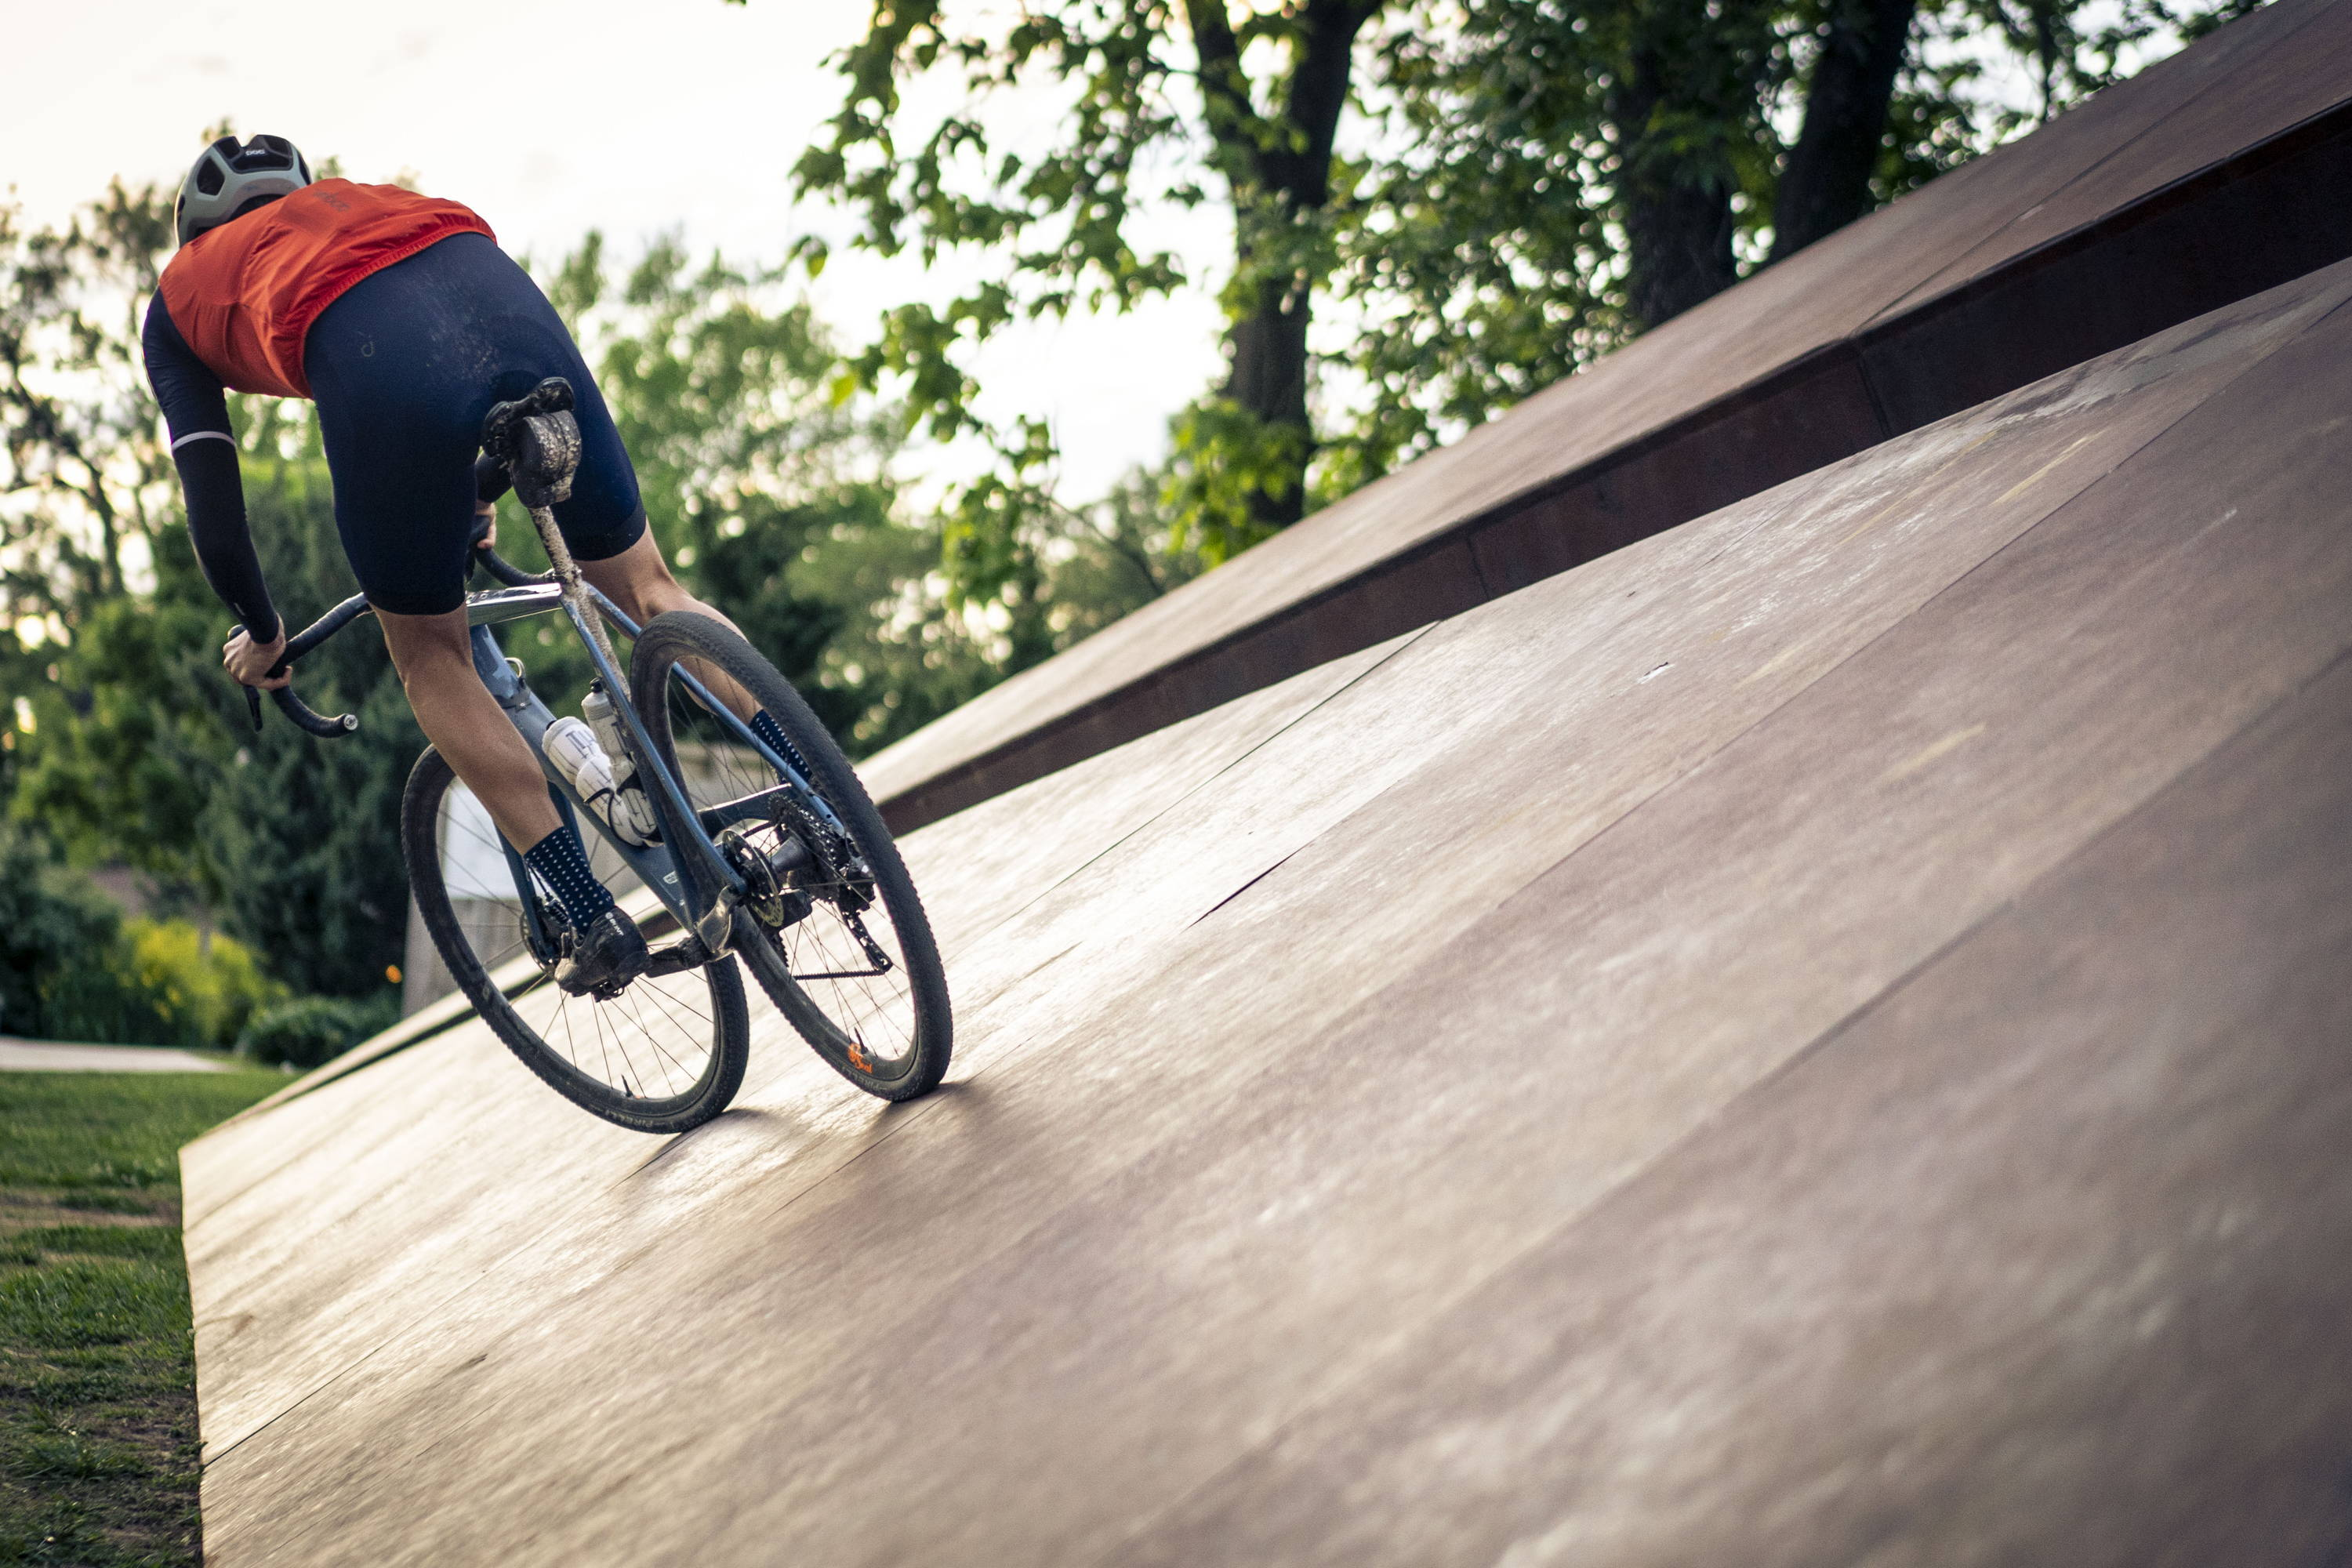 A person riding a bike on a smoothly paved path